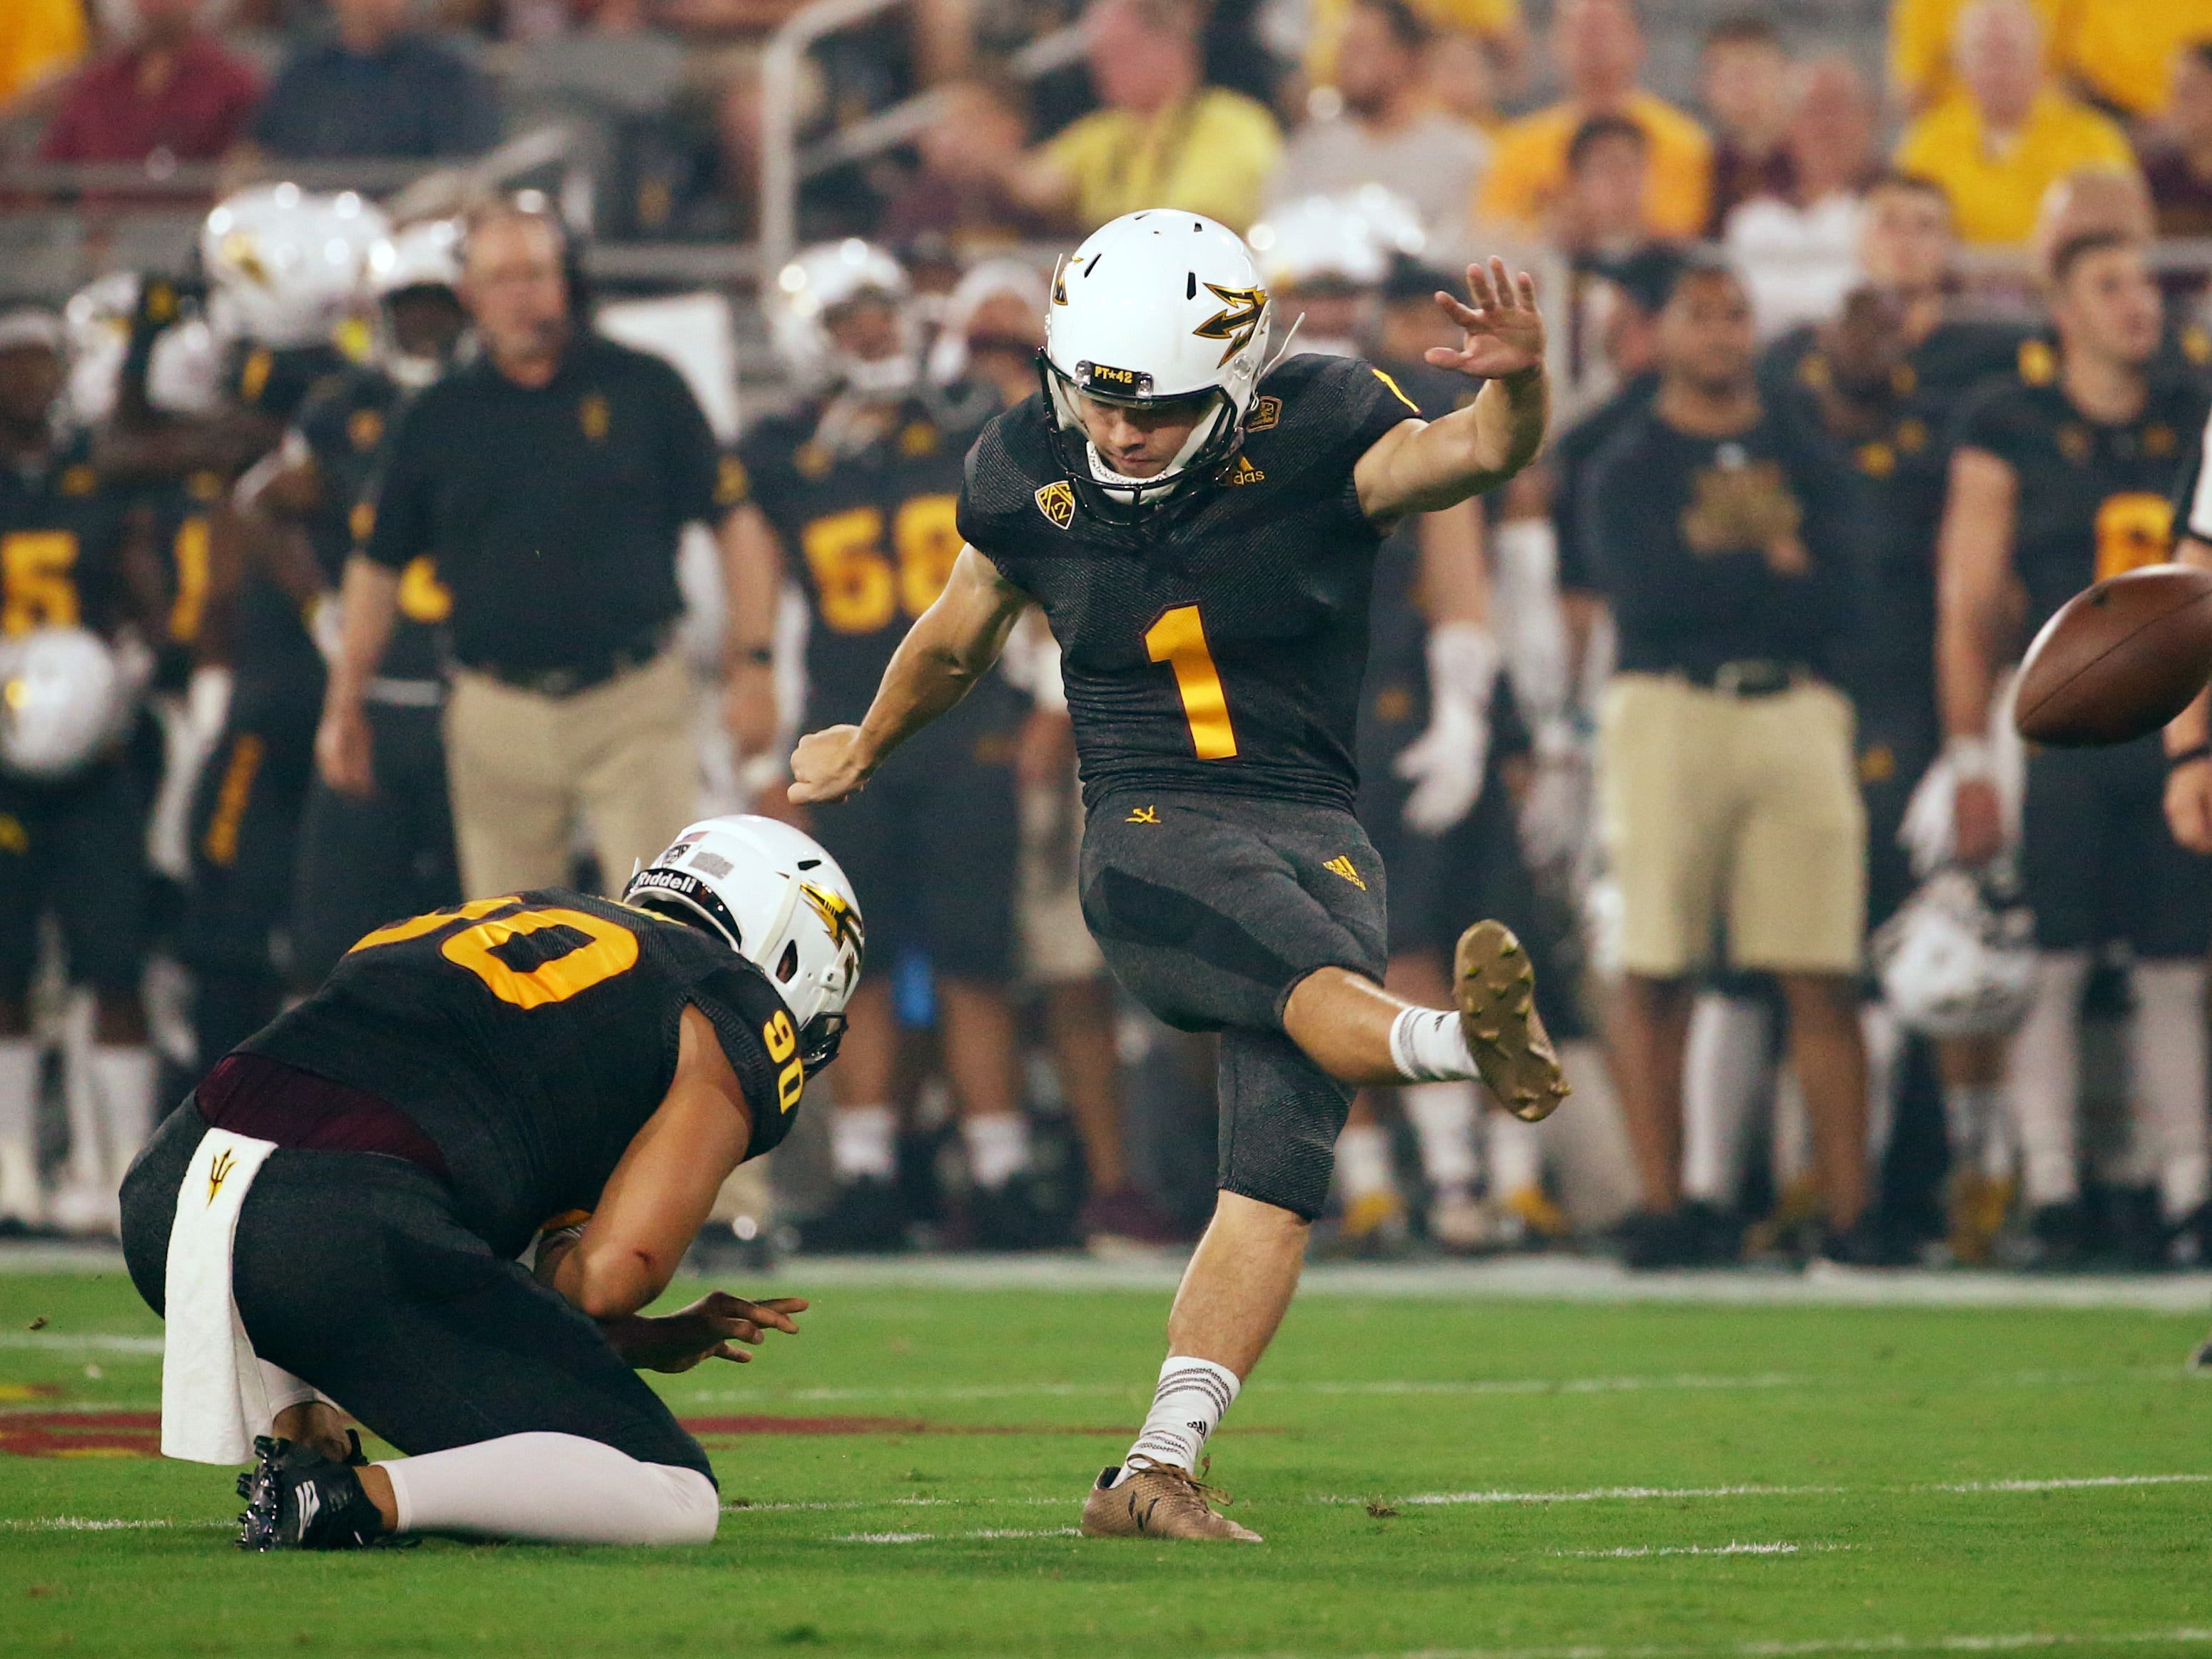 Arizona State Brandon Ruiz kicks a field goal against Oregon State in the first half on Sep. 29, 2018, at Sun Devil Stadium.